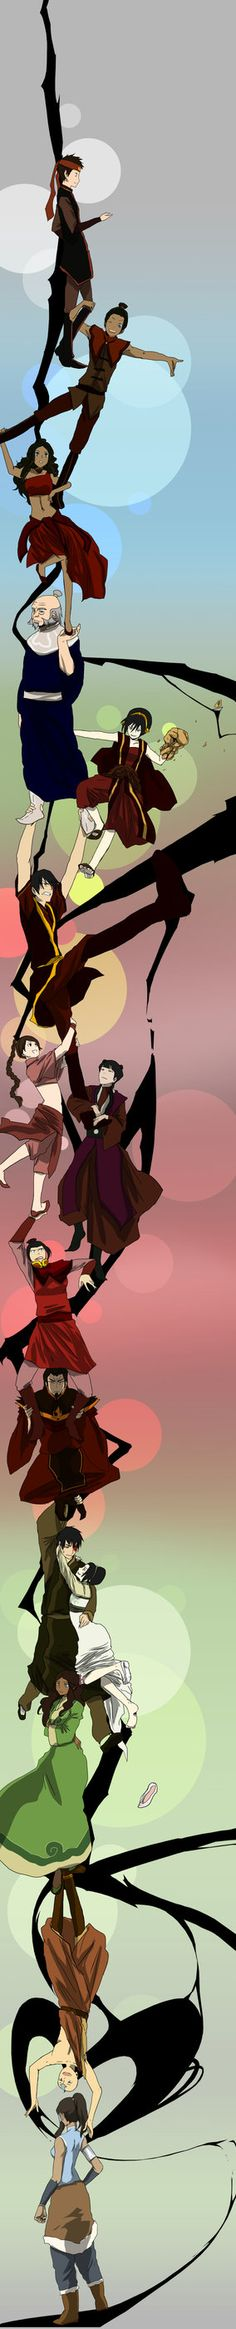 Avatar The Last Airbender/ Legend of Korra Durarara don't lie I live these